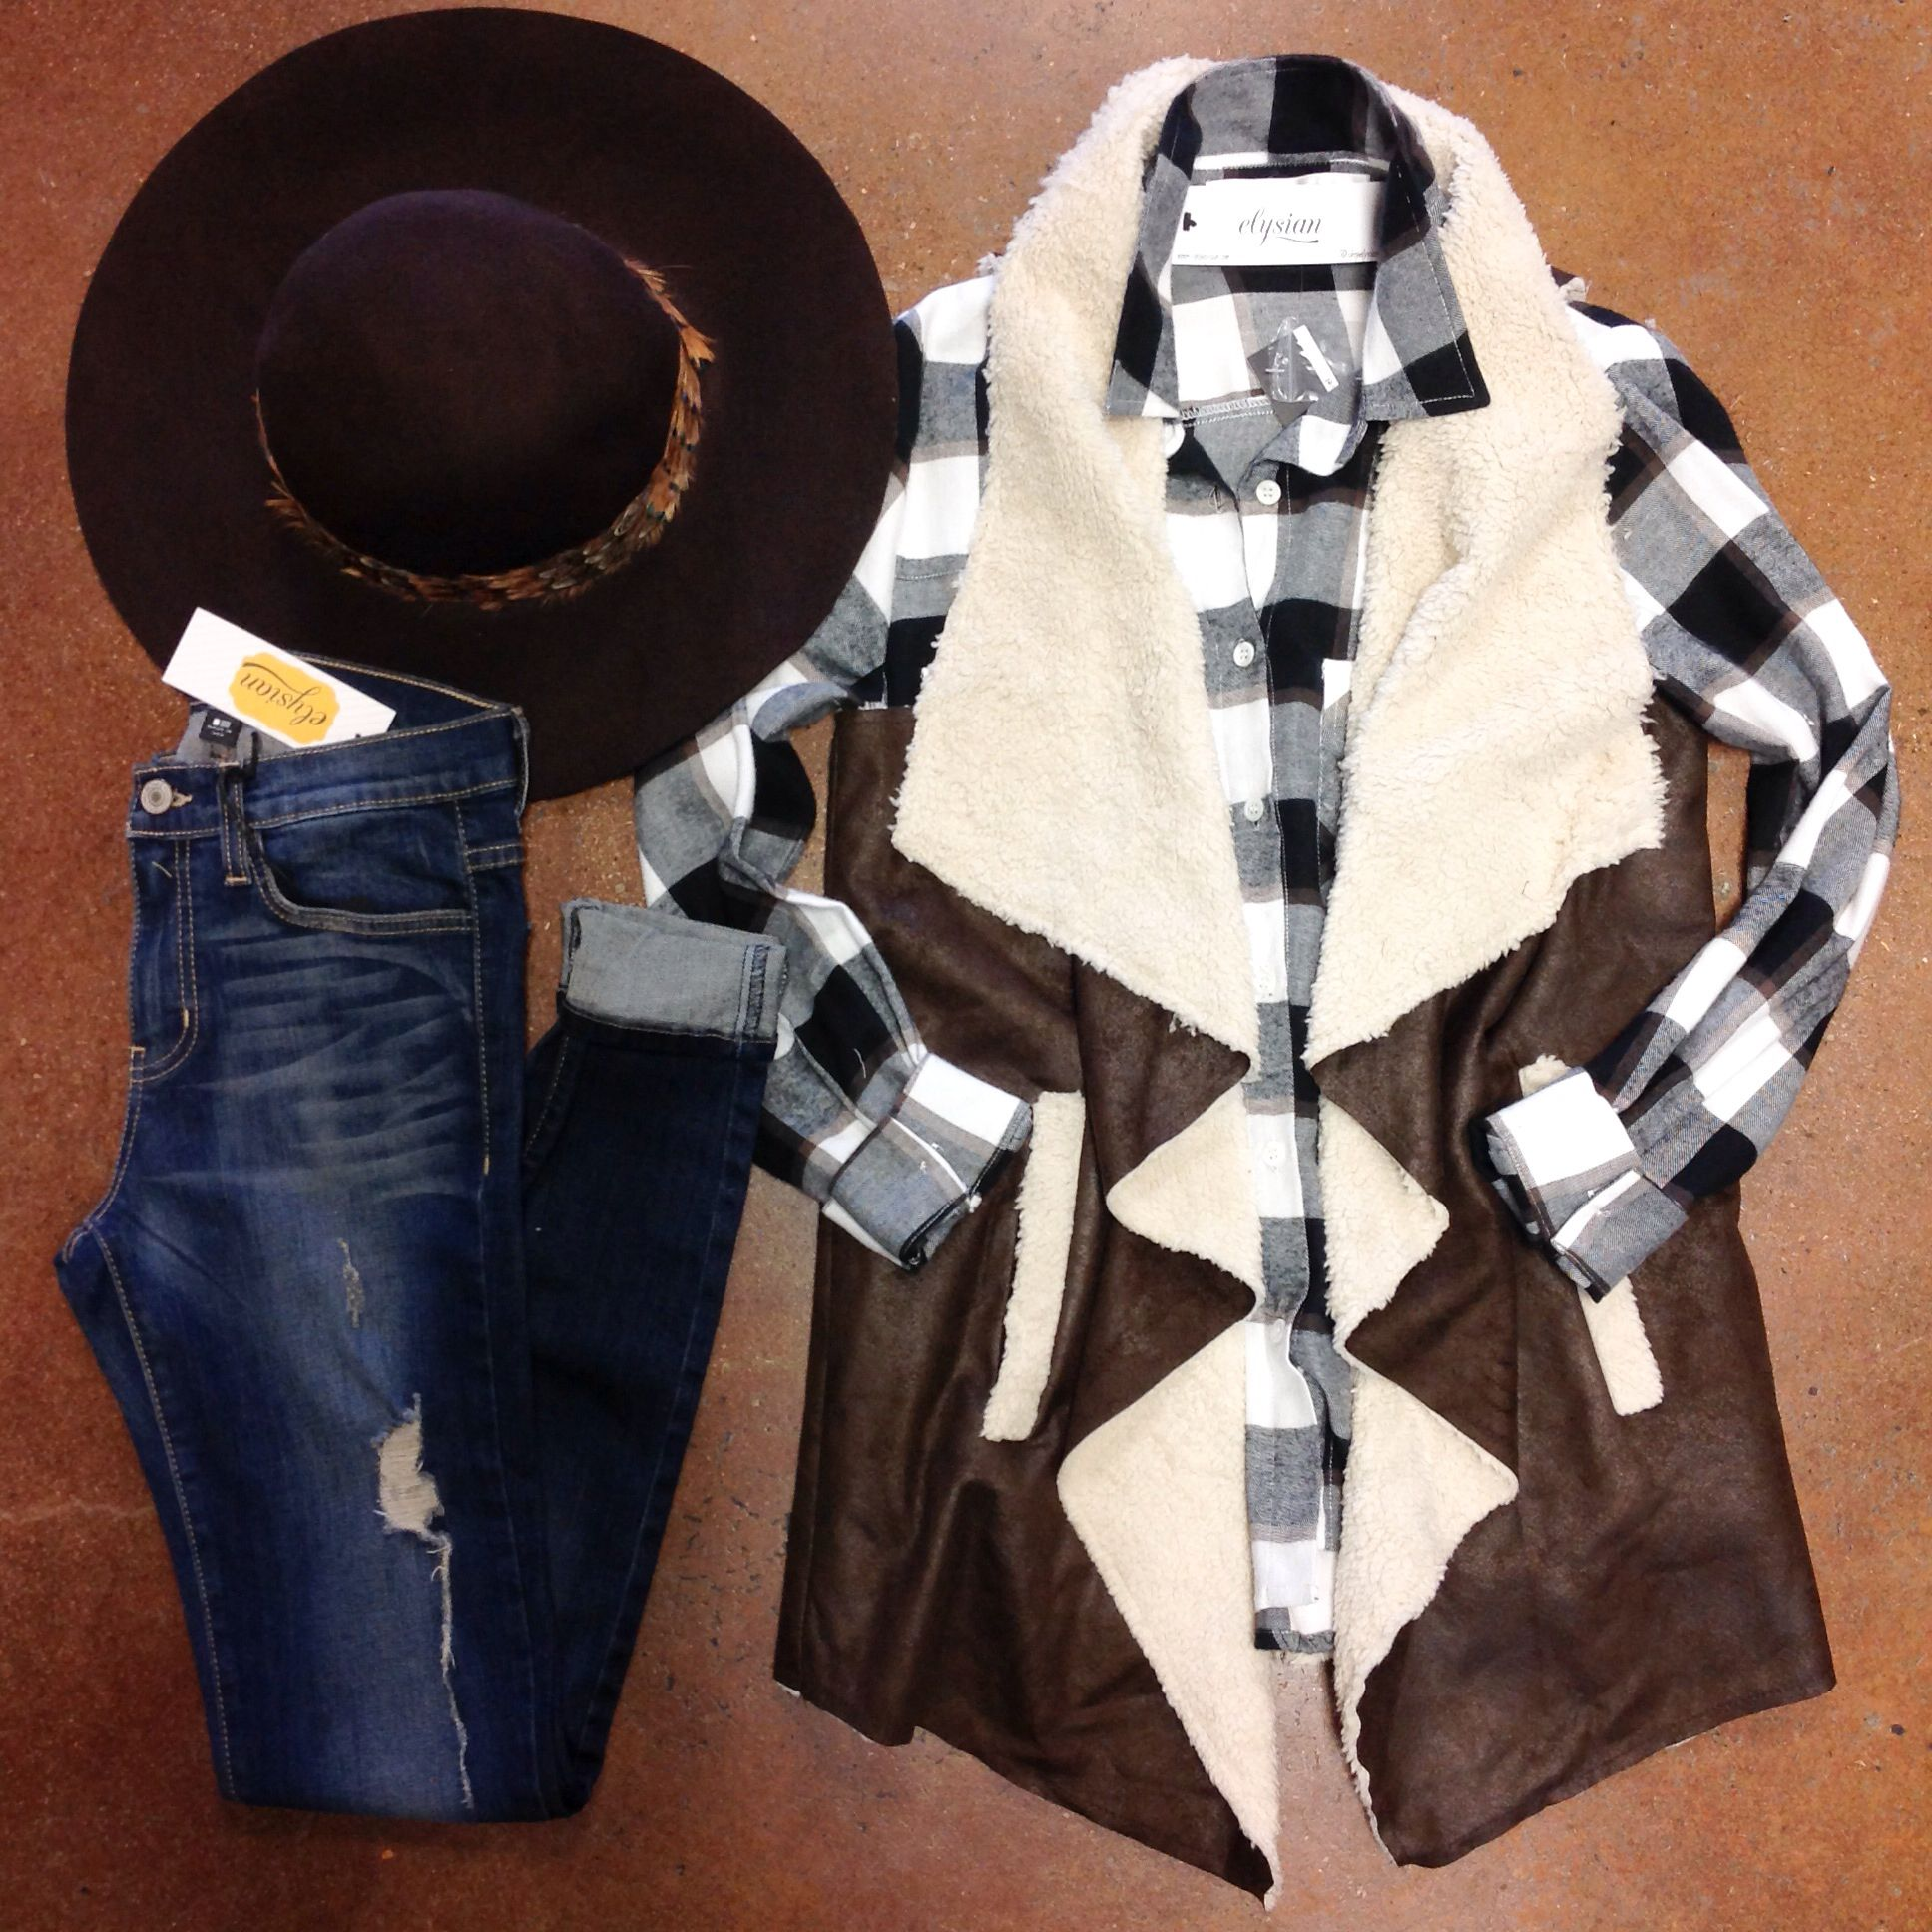 Layered In Plaid  Wool Feathered Floppy Hat $42. Black Plaid Flannel [last one, size S] $36. [in-store] Vested In Utah $48. Vintage Washed Skinny Jean $72. [online & in-store]  #layered #plaid #vest #fauxfur #floppyhat #fallstyle